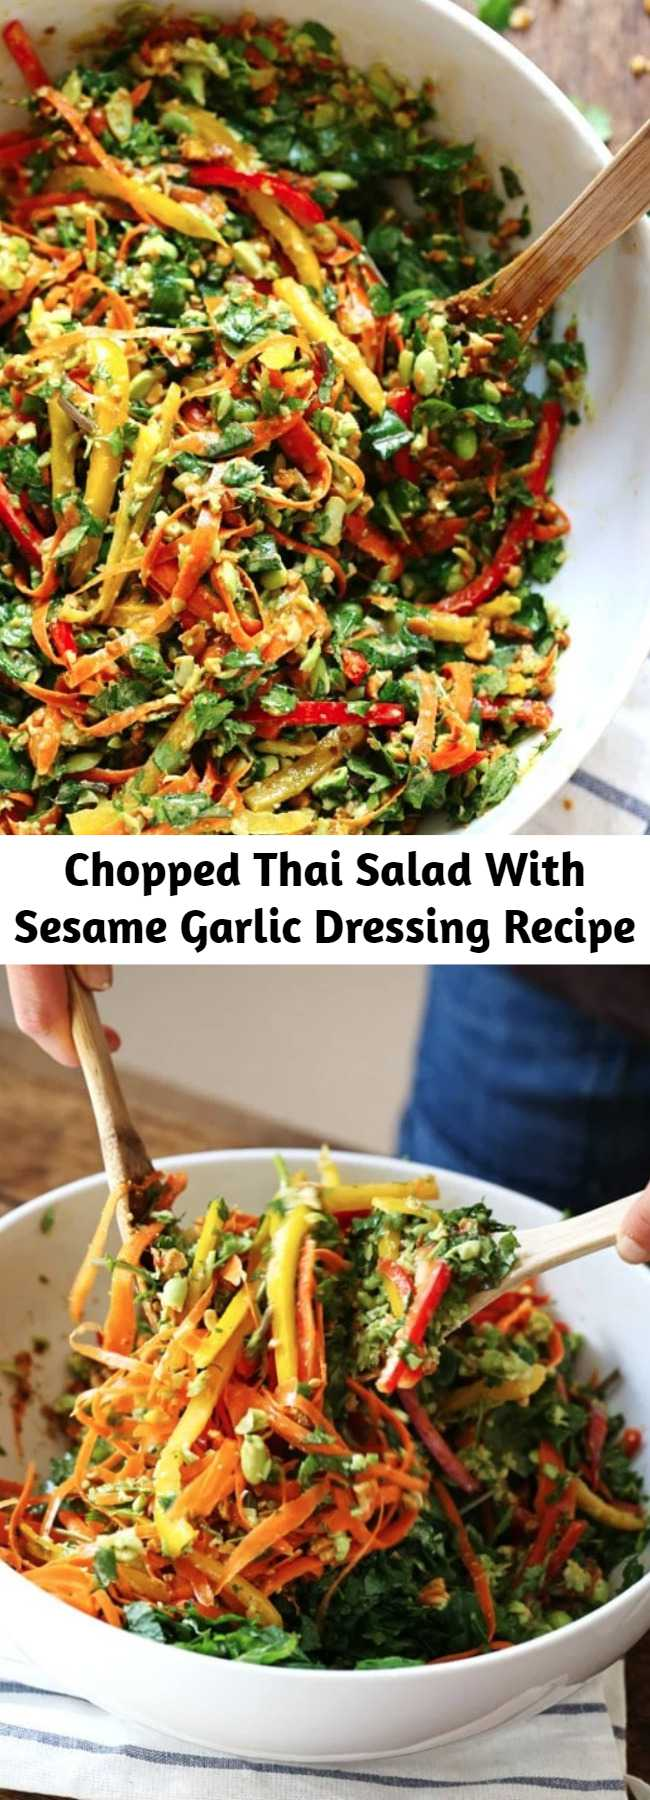 Chopped Thai Salad With Sesame Garlic Dressing Recipe - This Chopped Thai Salad with Sesame Garlic Dressing is THE BEST! A rainbow of power veggies with a yummy homemade dressing. #vegan #vegetarian #healthy #sugarfree #cleaneating